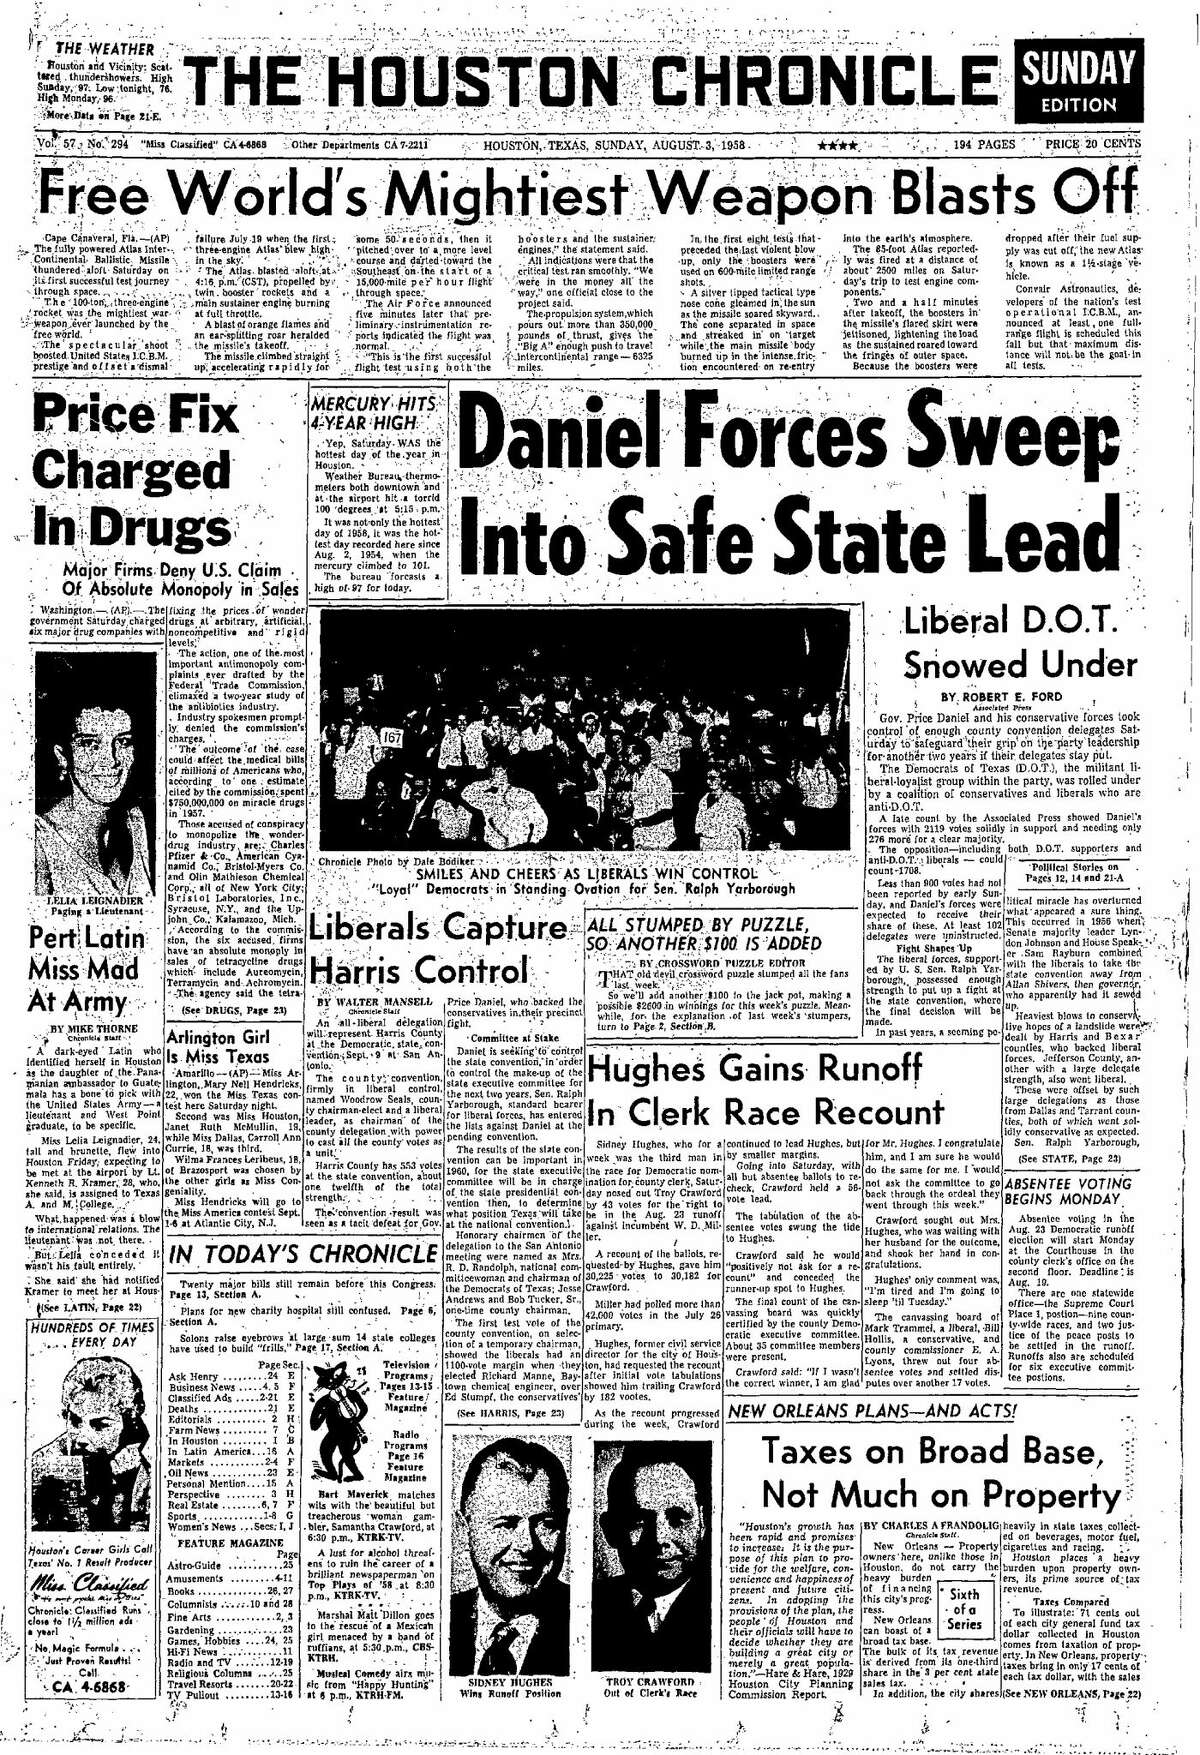 Houston Chronicle front page from Aug. 3, 1958.